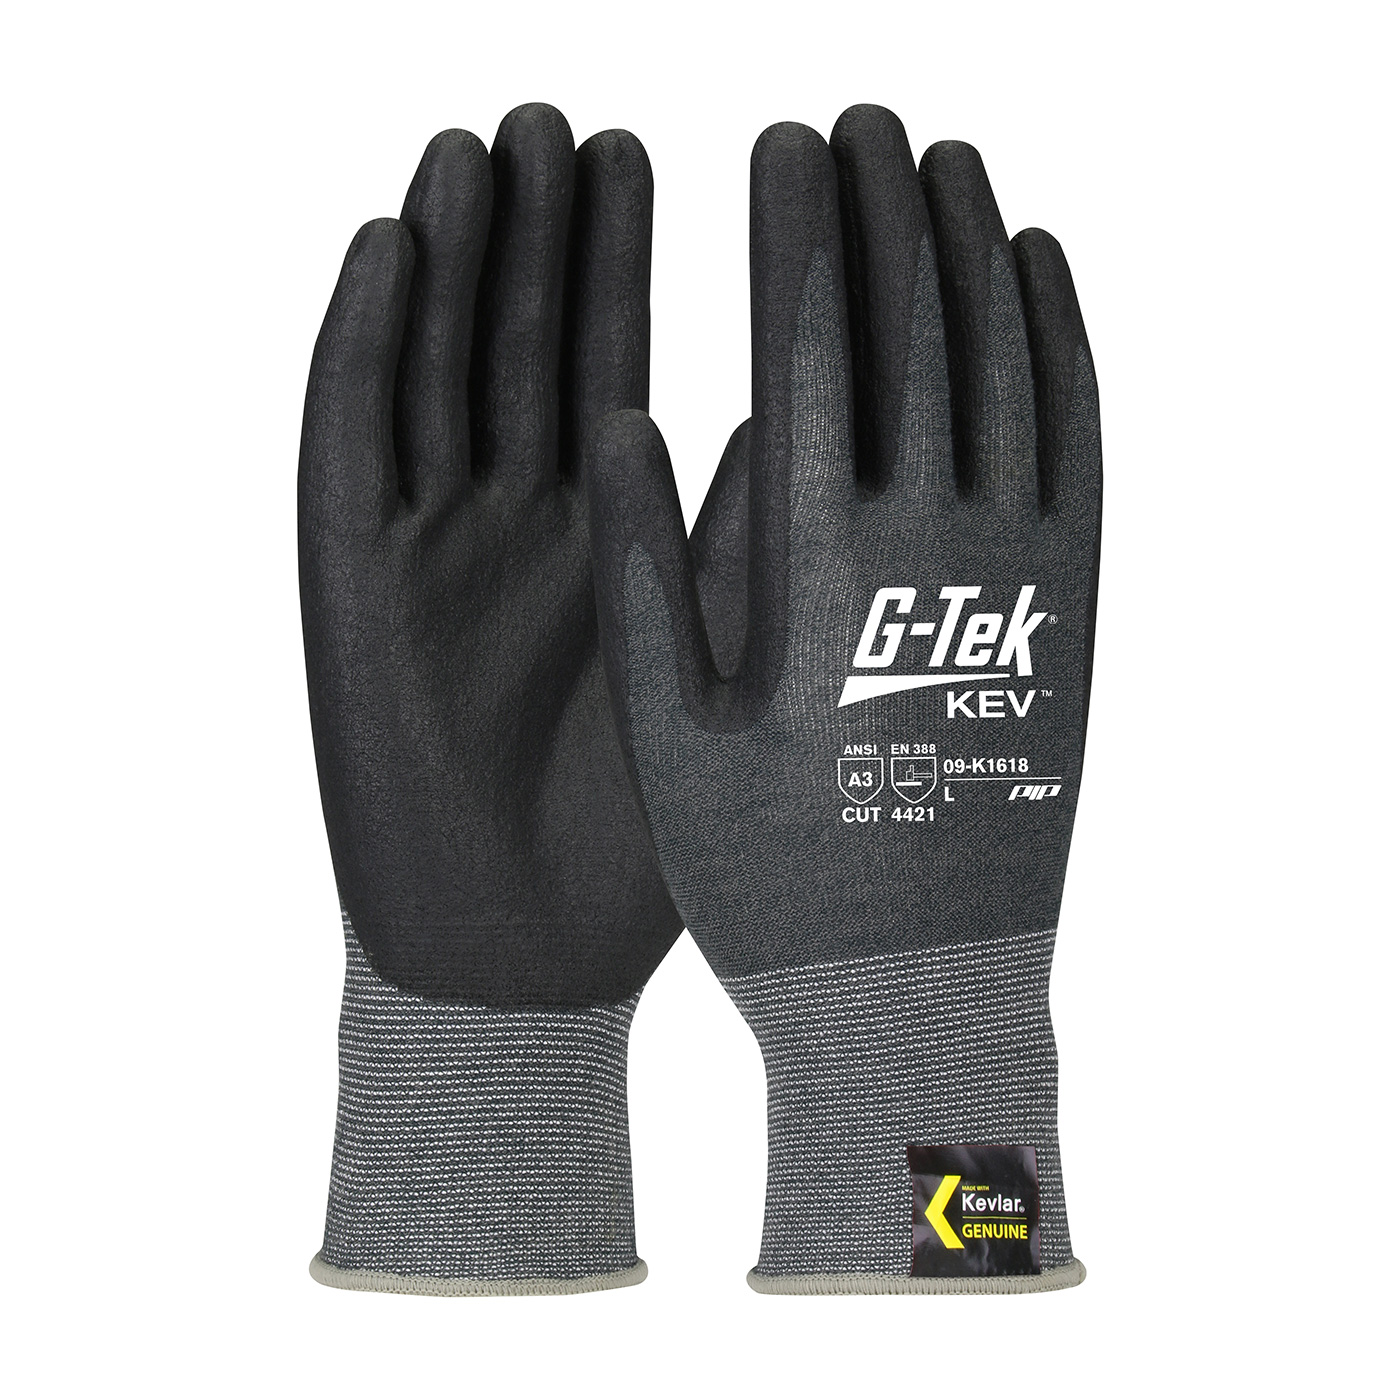 #09K1618 PIP® G-Tek® Kev™ Kevlar® Foam Nitrile Coated Palm and Fingers Seamless Knit Gloves